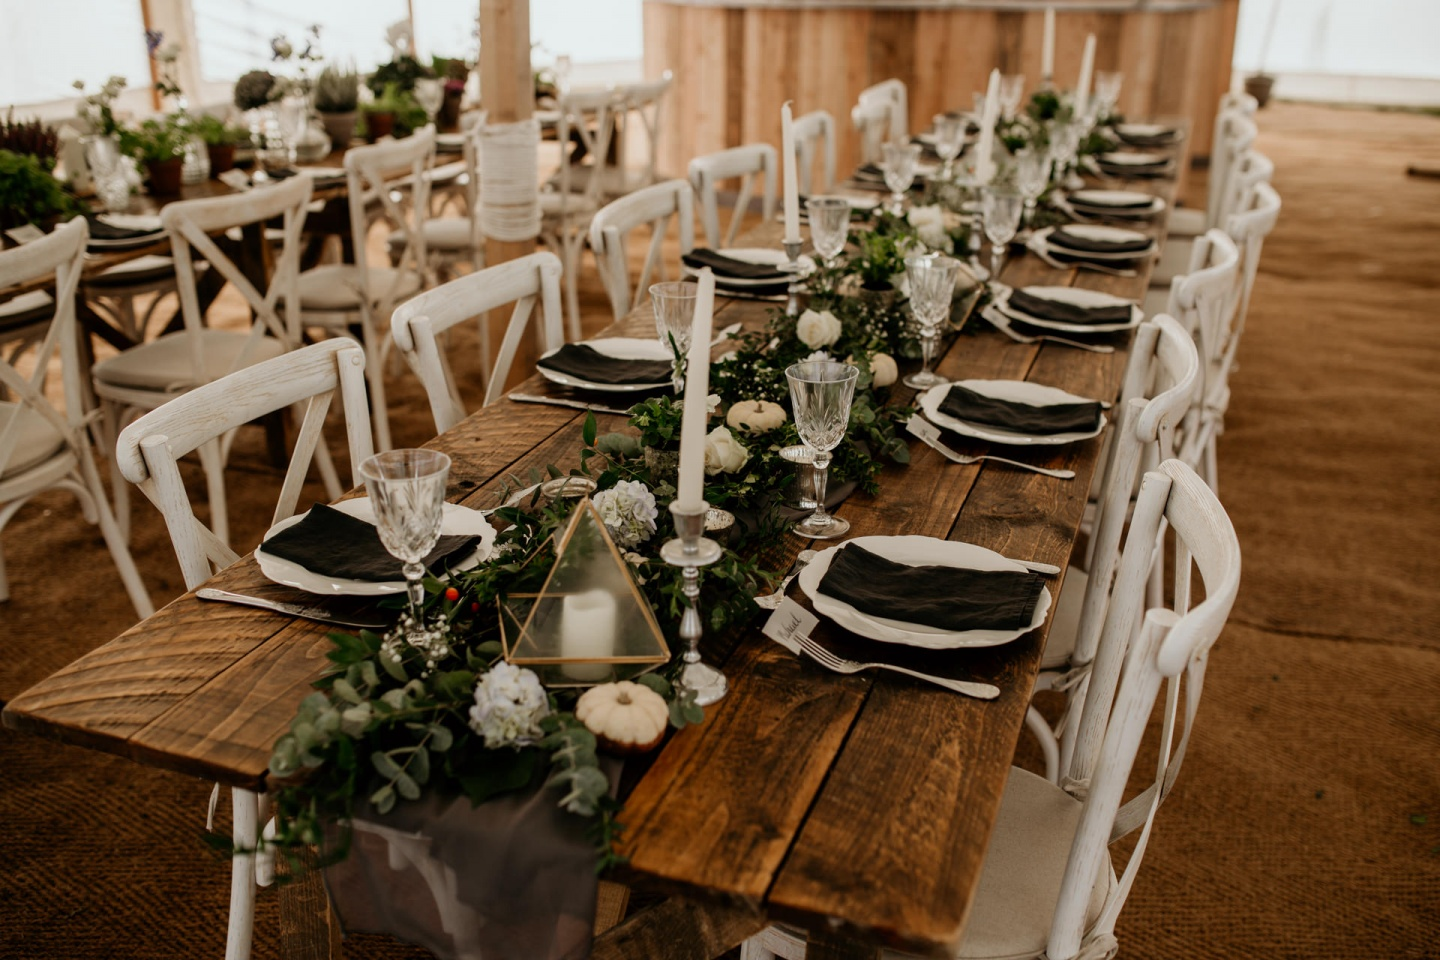 Autumn wedding table set up in white and black